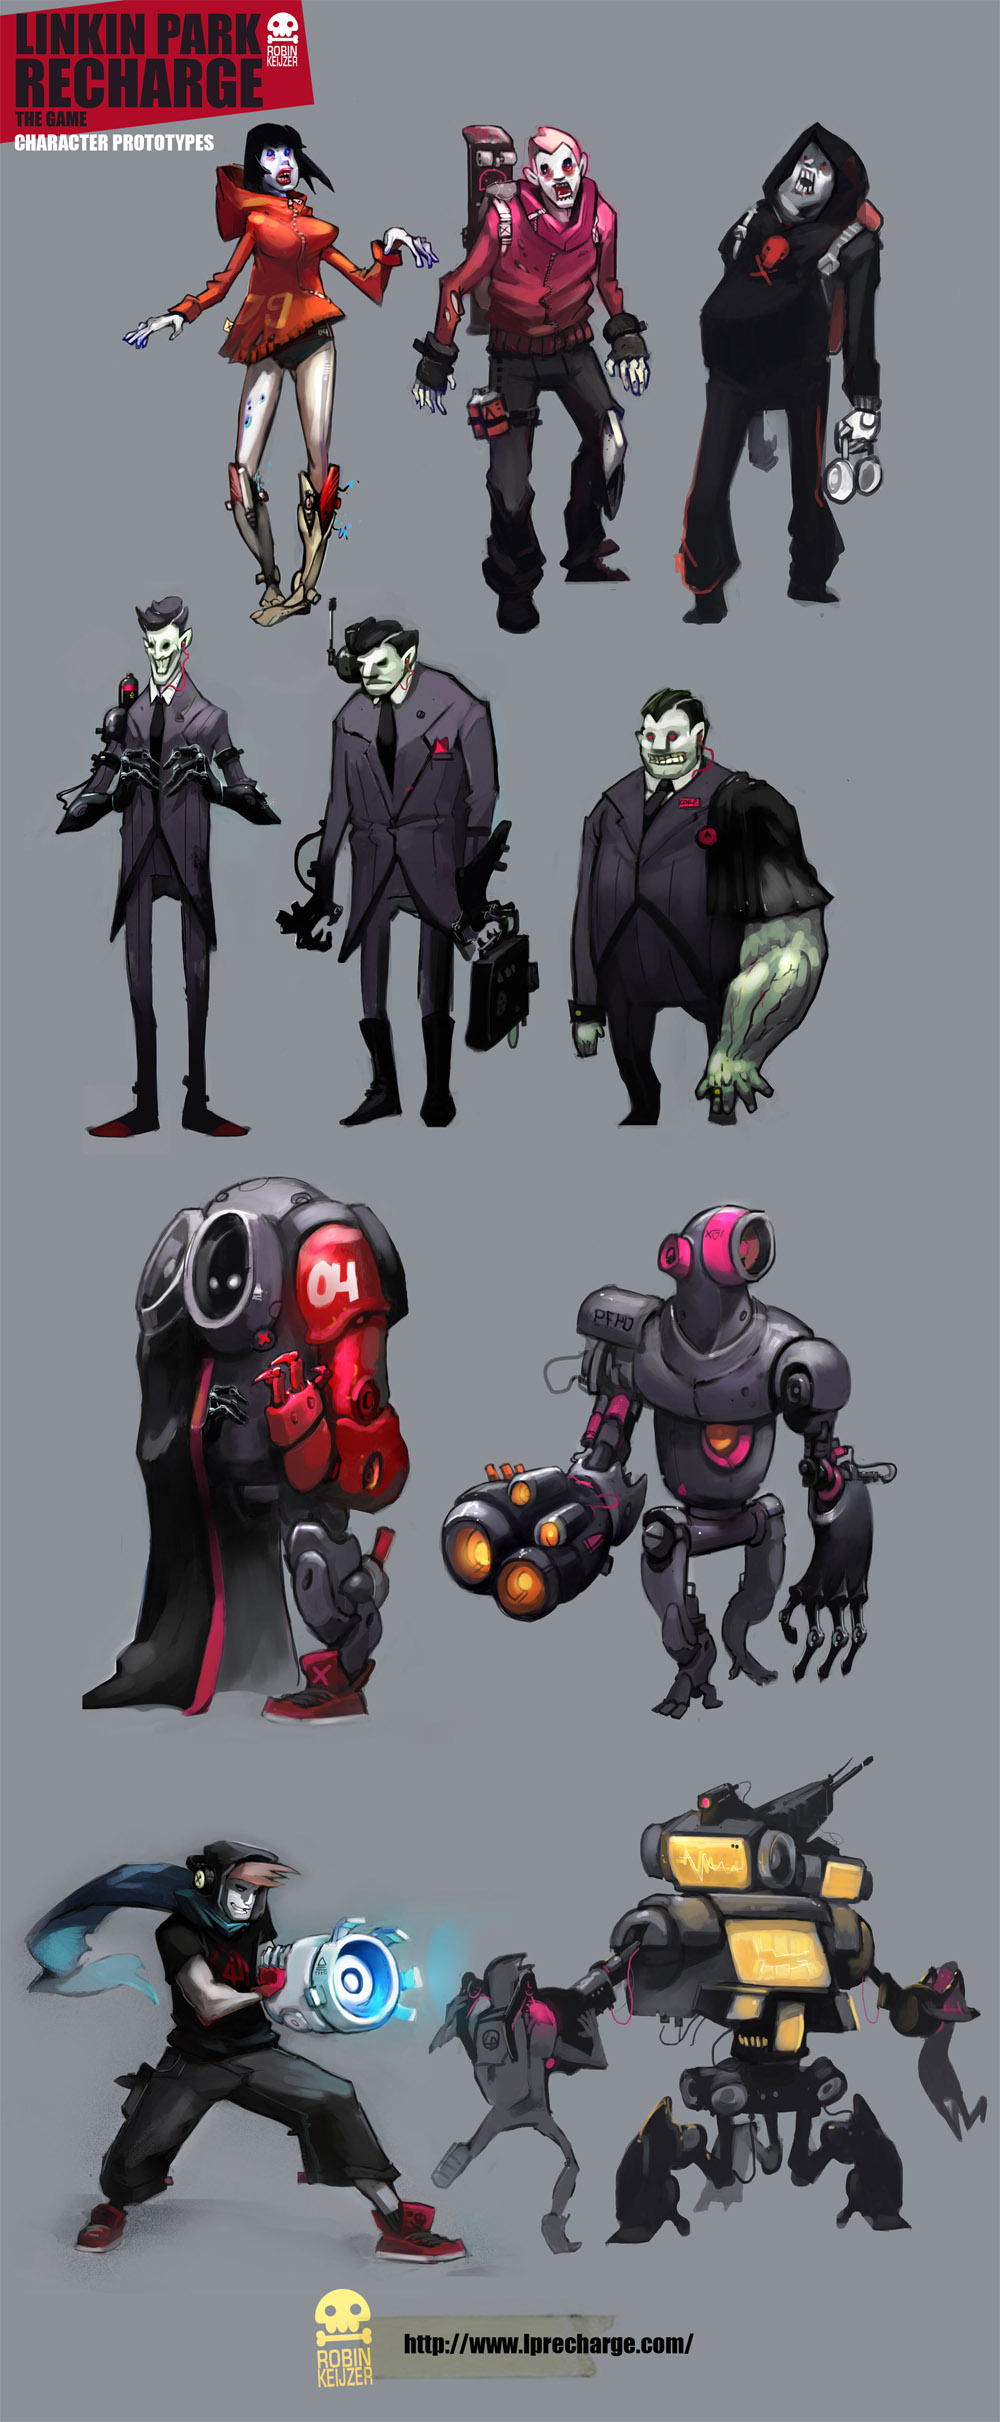 Linkin Park Recharge characters by RobinKeijzer